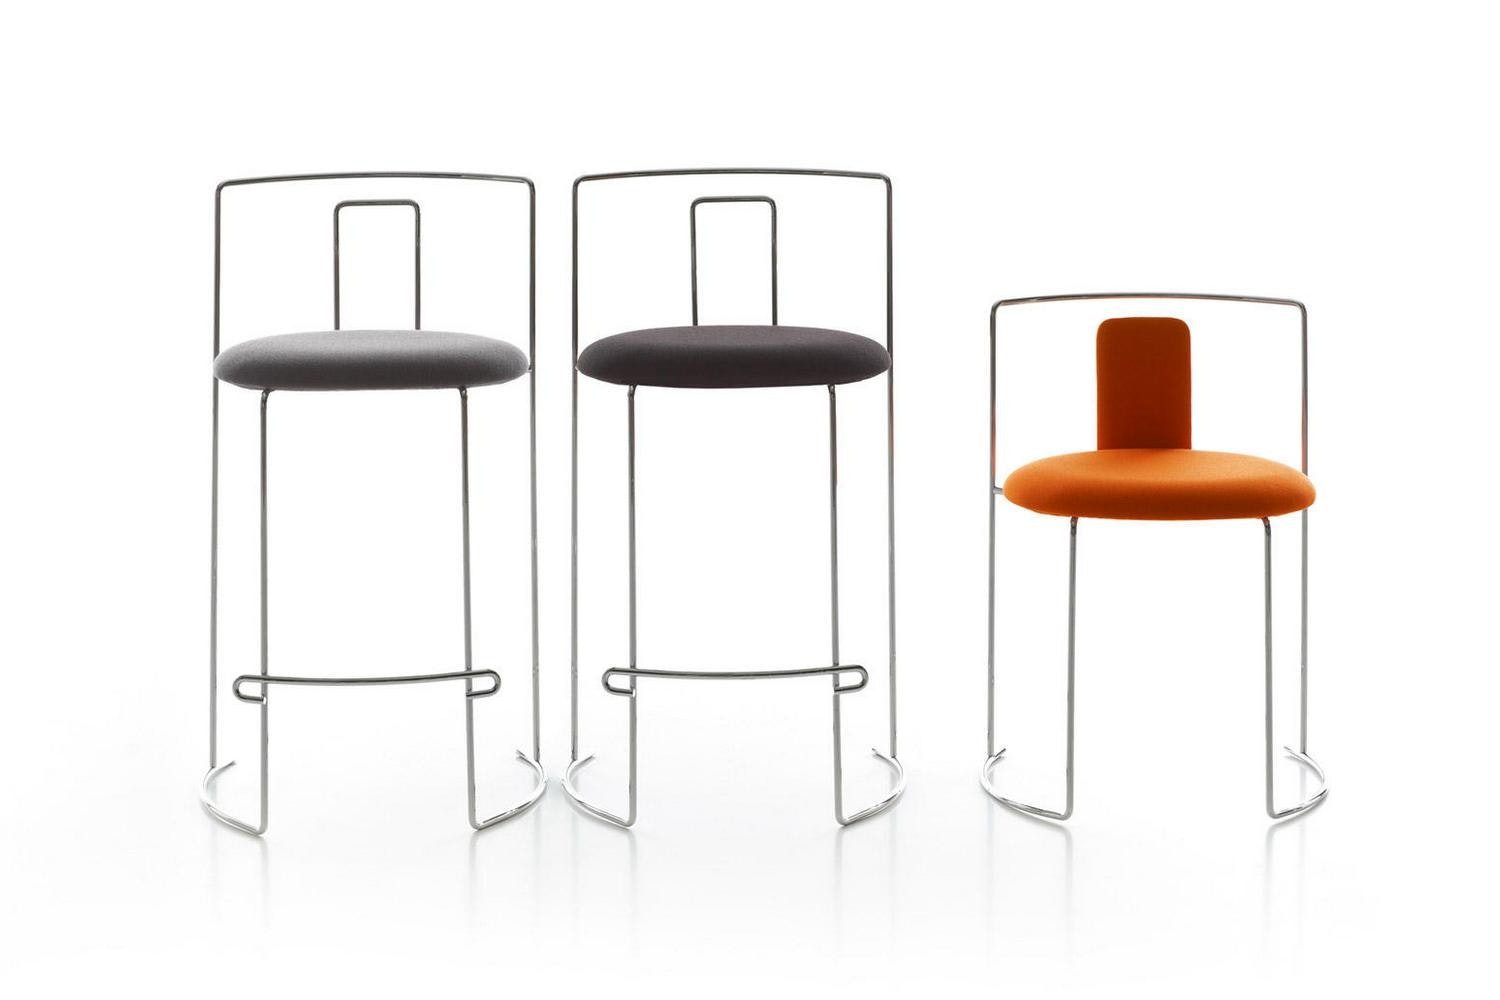 W58 Gaja Bar Stool by Kazuhide Takahama for Cassina